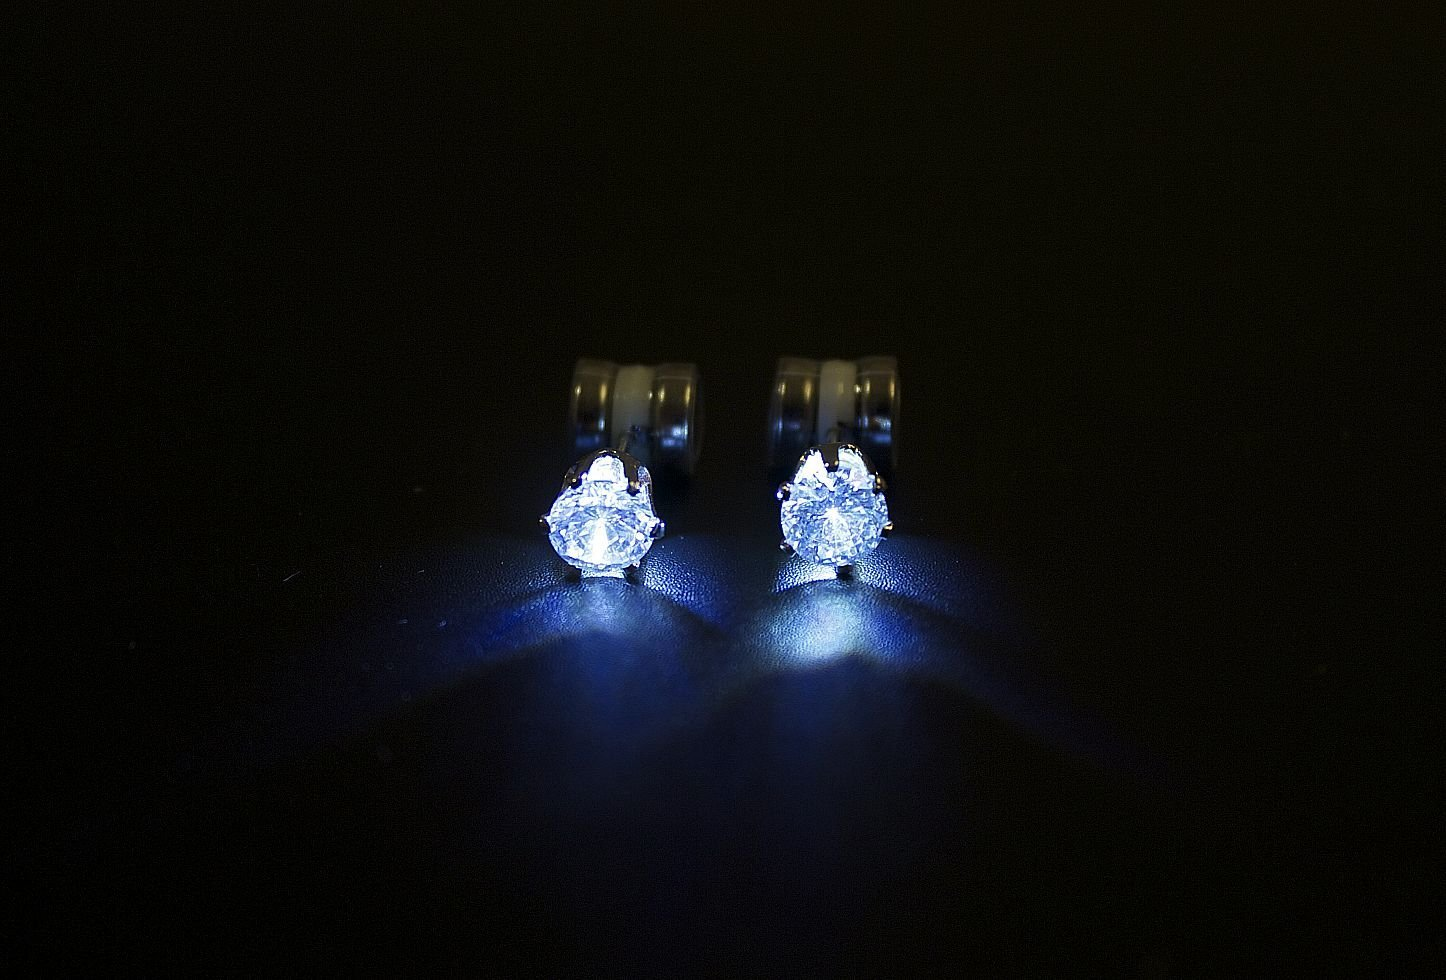 Night Ice Led Crystal Earrings